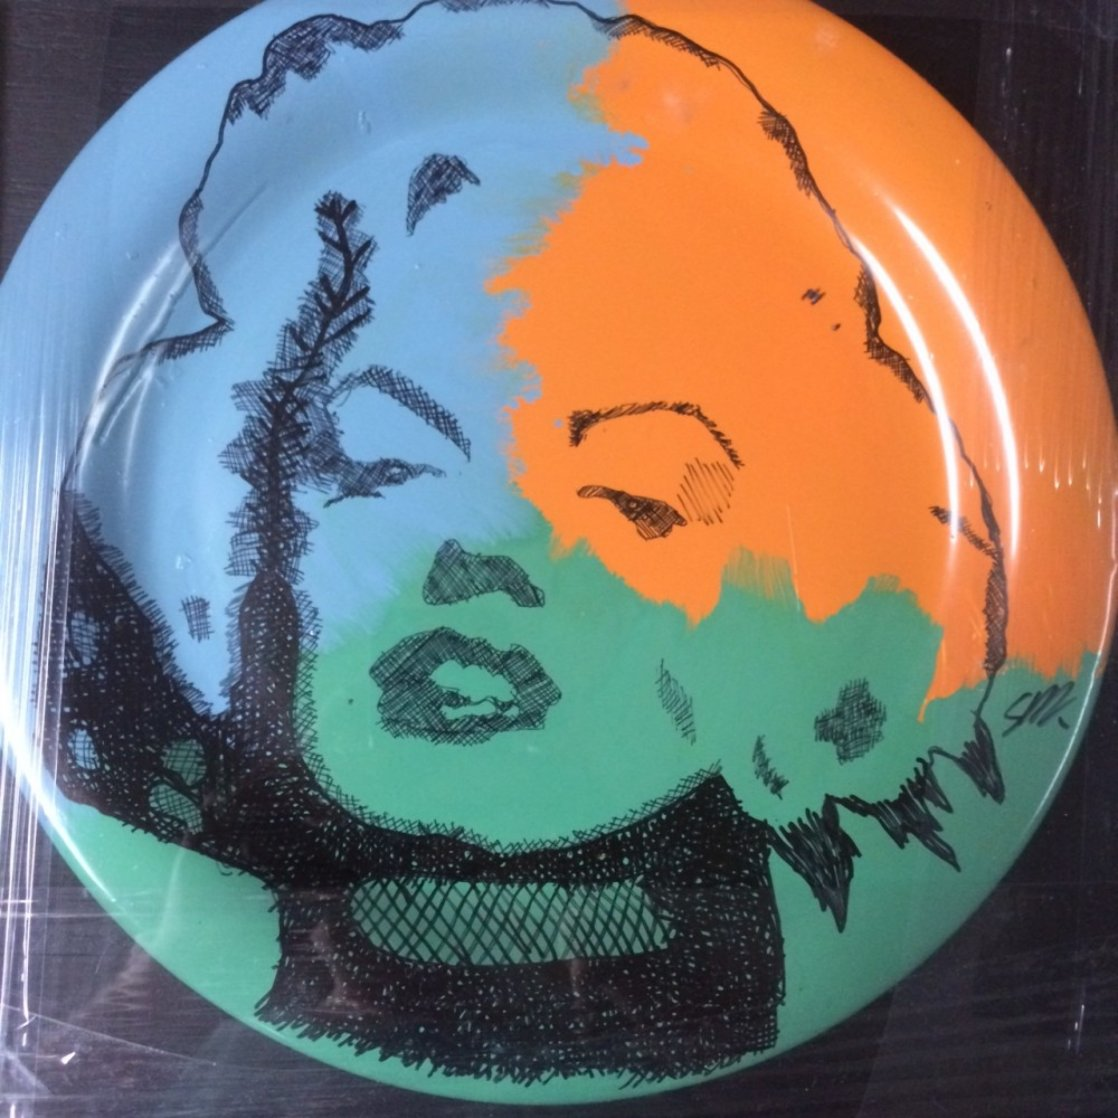 Marilyn Monroe Ceramic Plate Unique Original Painting by Steve Kaufman